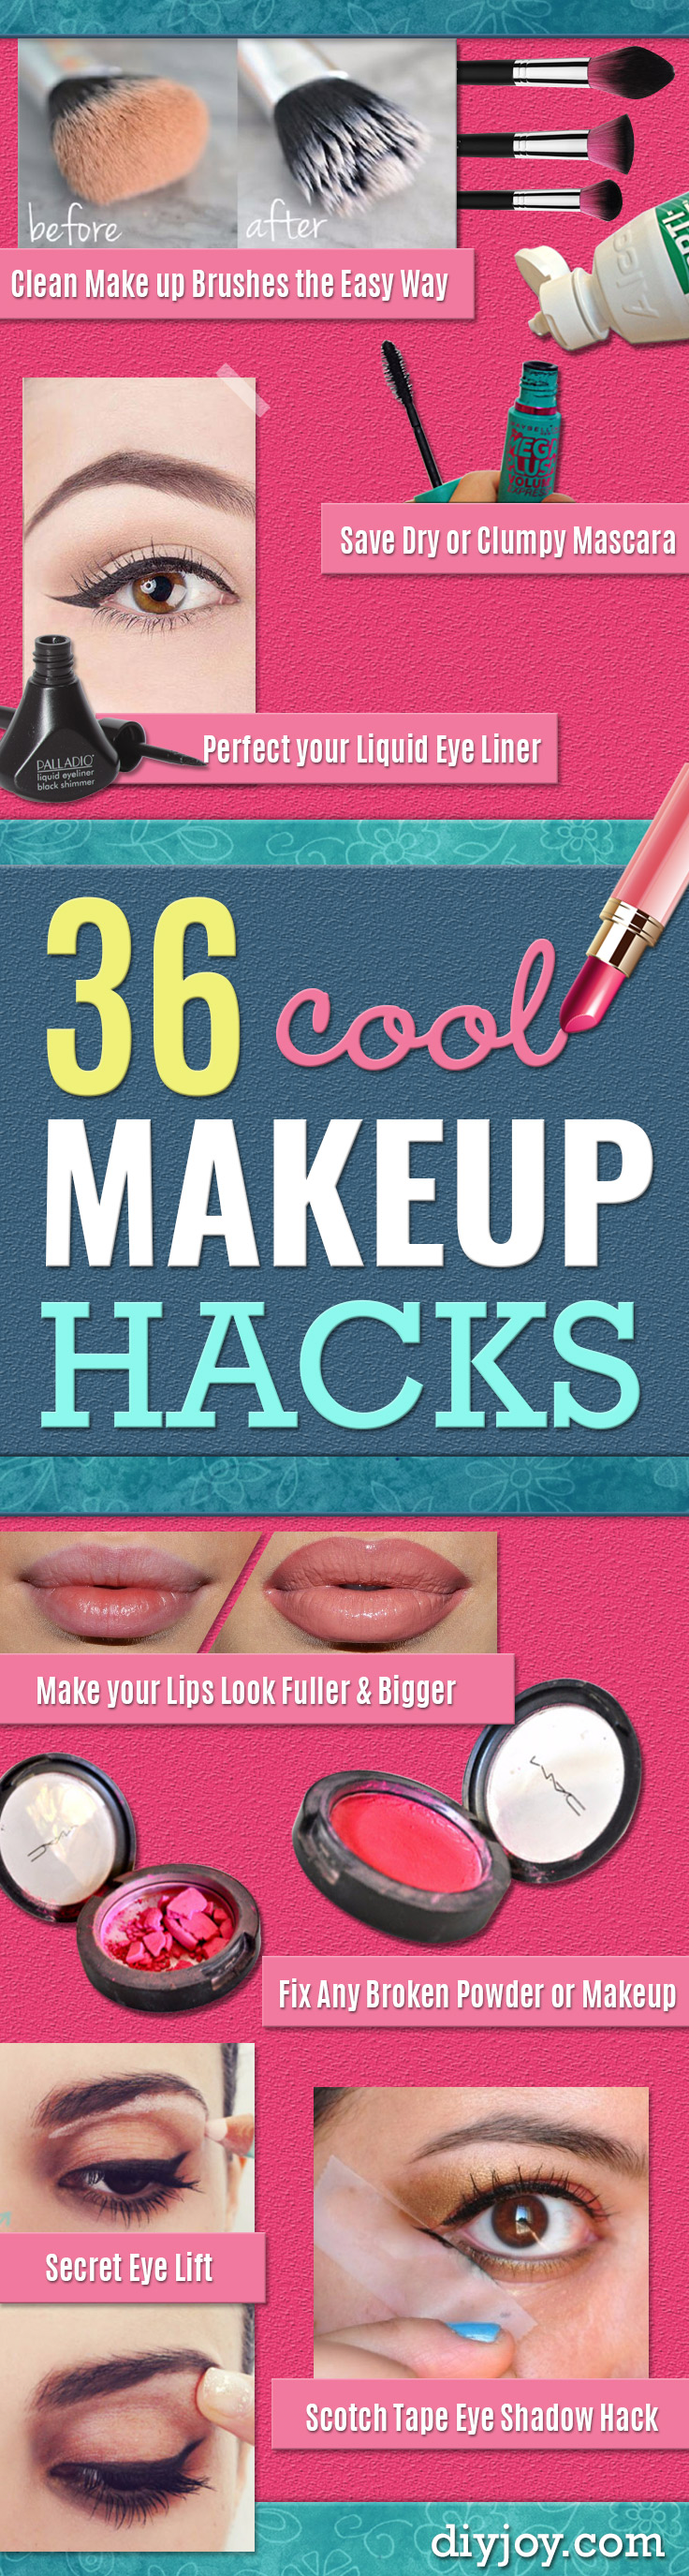 Cool DIY Makeup Hacks for Quick and Easy Beauty Ideas - How To Fix Broken Makeup, Tips and Tricks for Mascara and Eye Liner, Lipstick and Foundation Tutorials - Fast Do It Yourself Beauty Projects for Women http://diyjoy.com/makeup-hacks